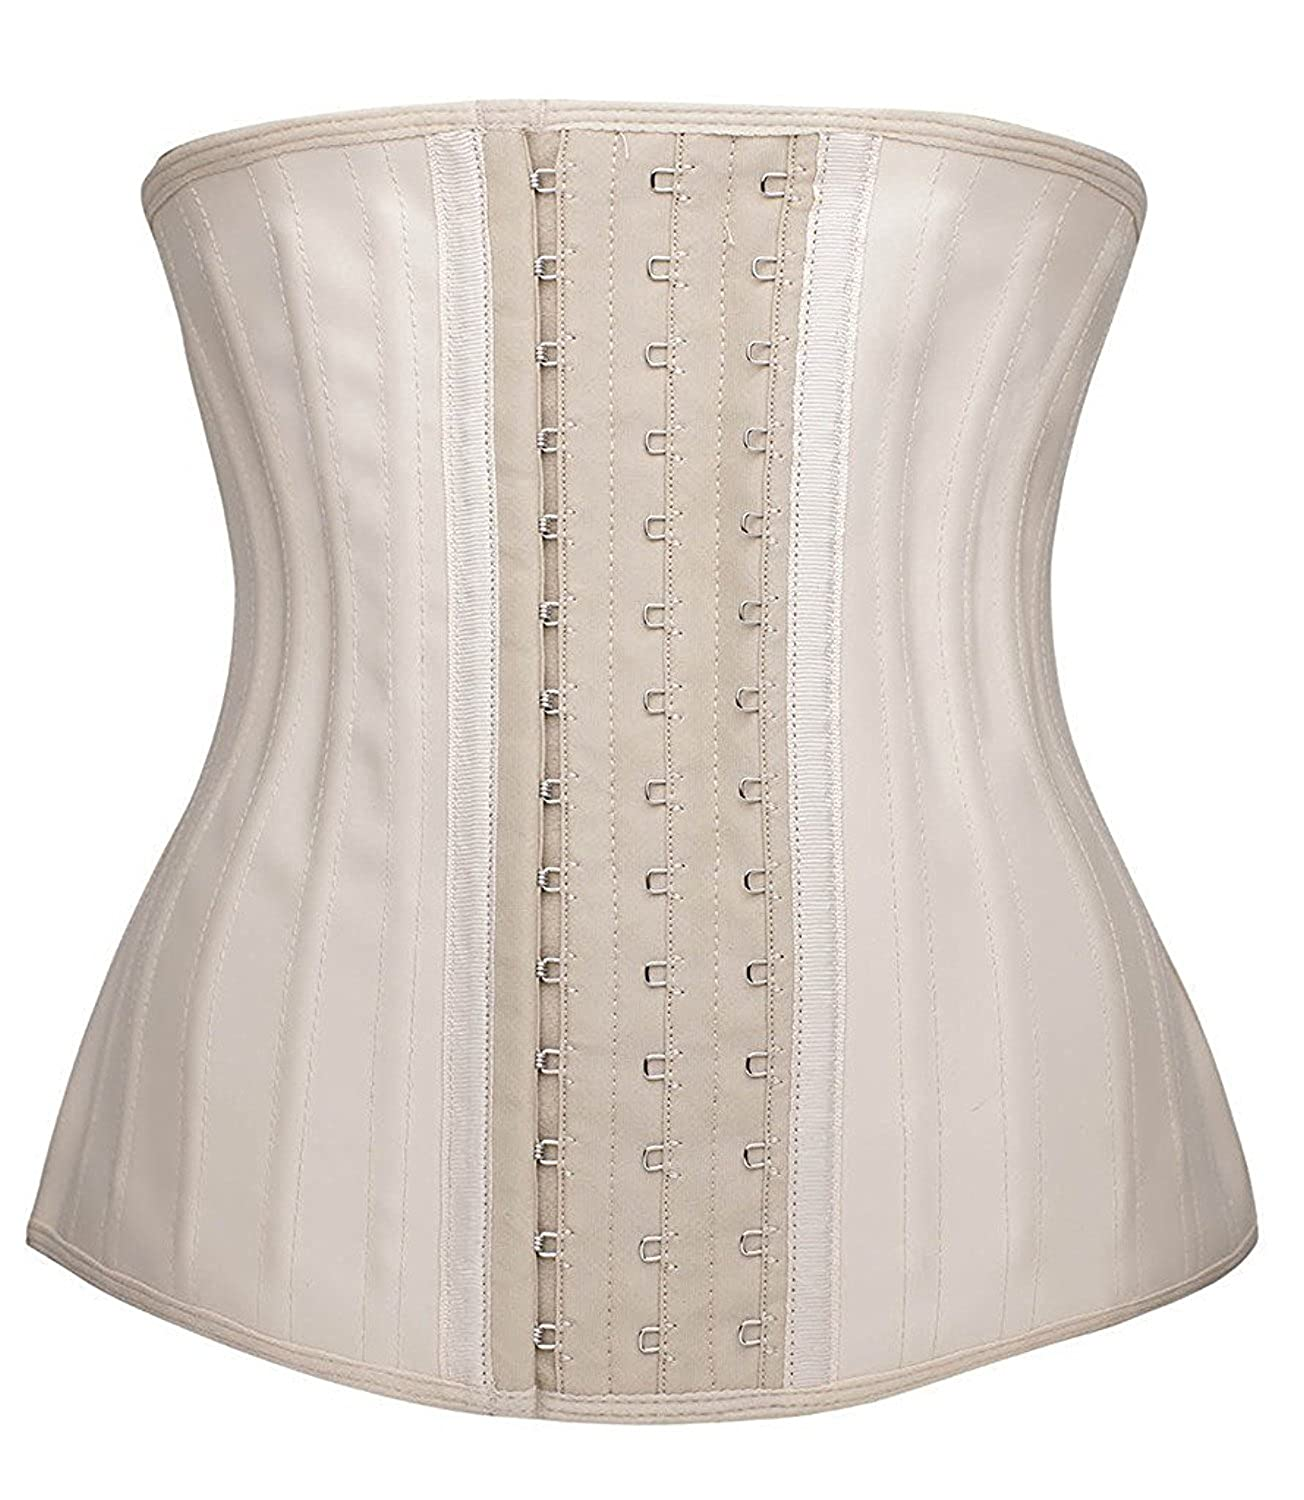 SHAPERX Womens Latex Sport Girdle Waist Training Corset Waist Shaper,UK-DT1210-Beige-L